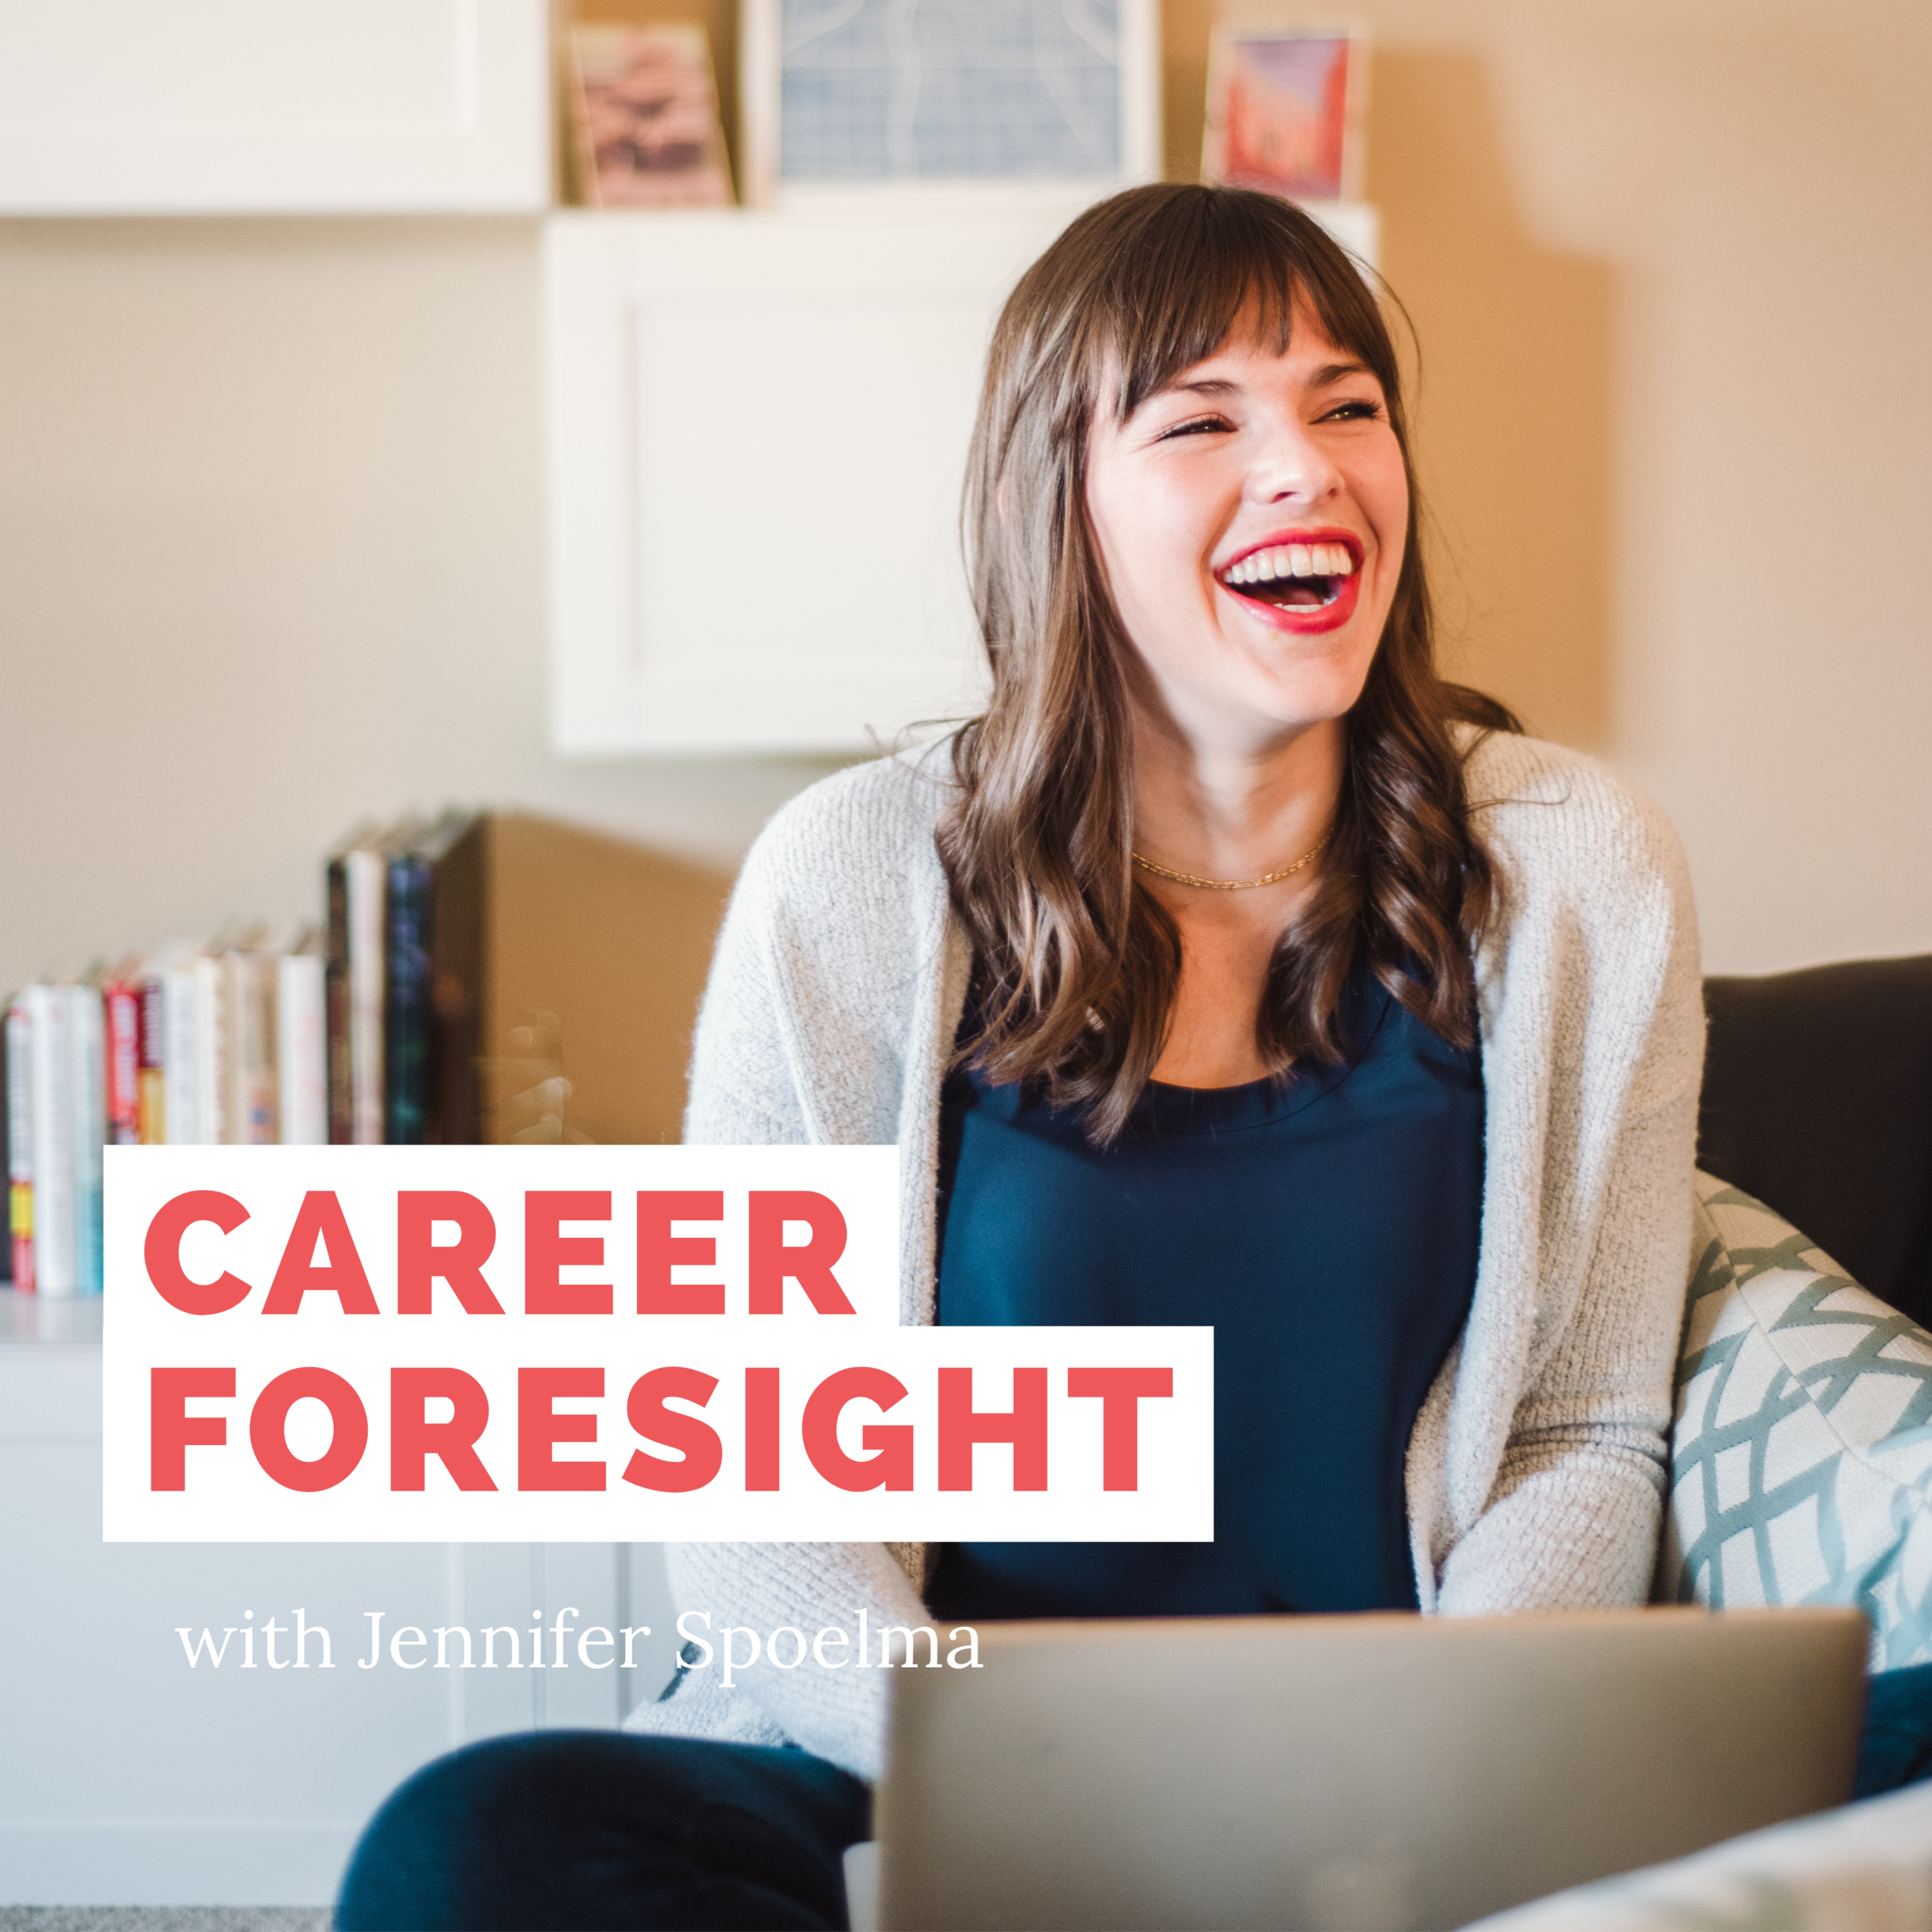 CAREER FORESIGHT Podcast Cover.png